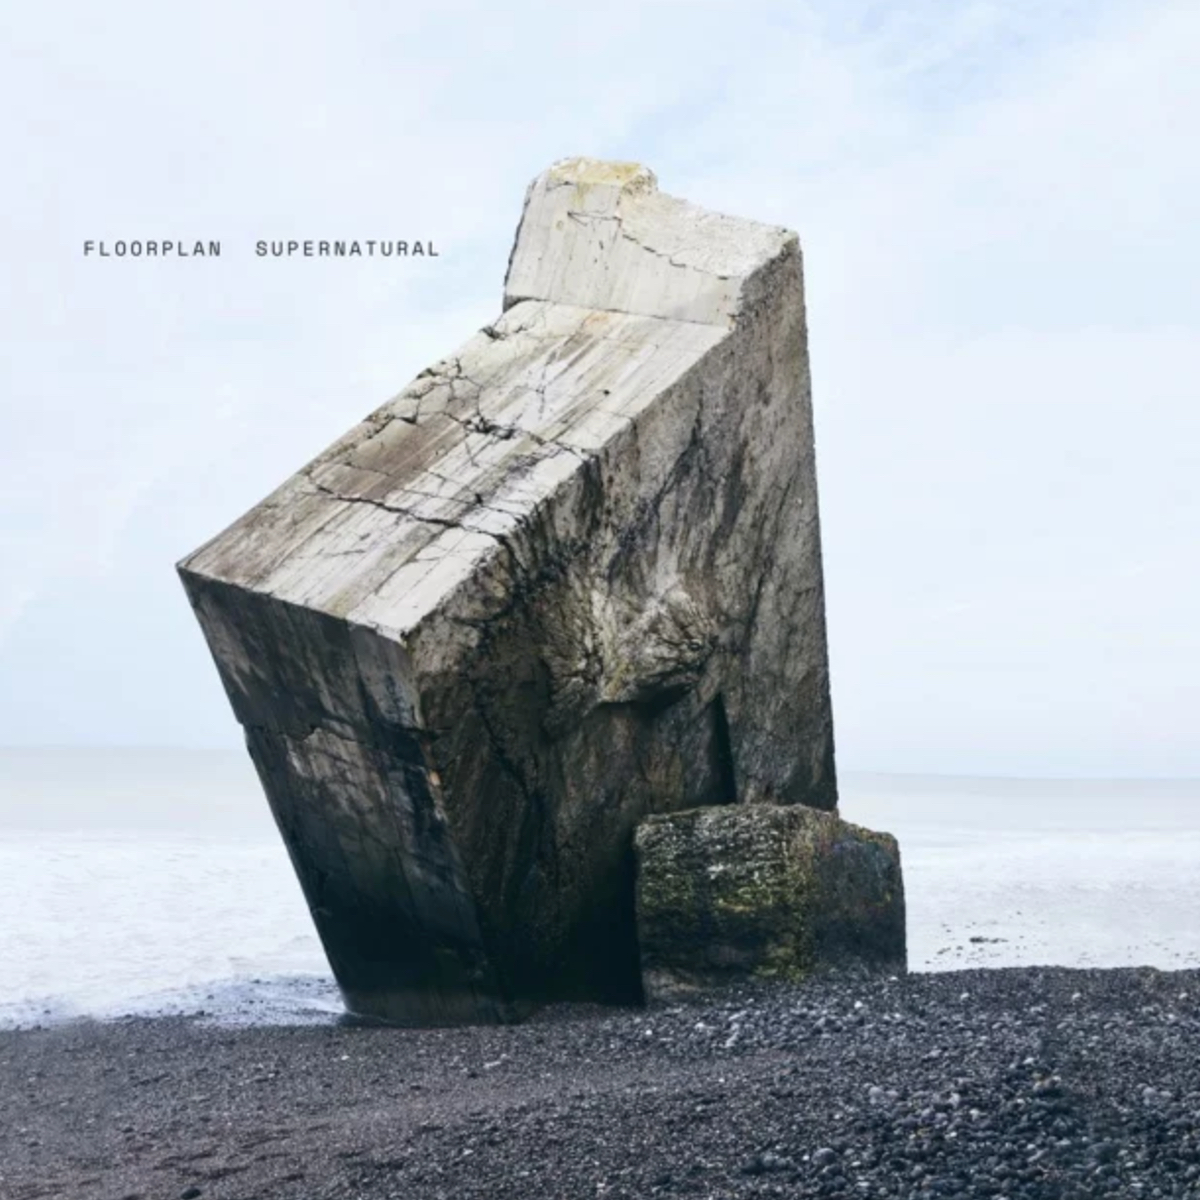 Floorplan debut on Aus Music with new album, Supernatural